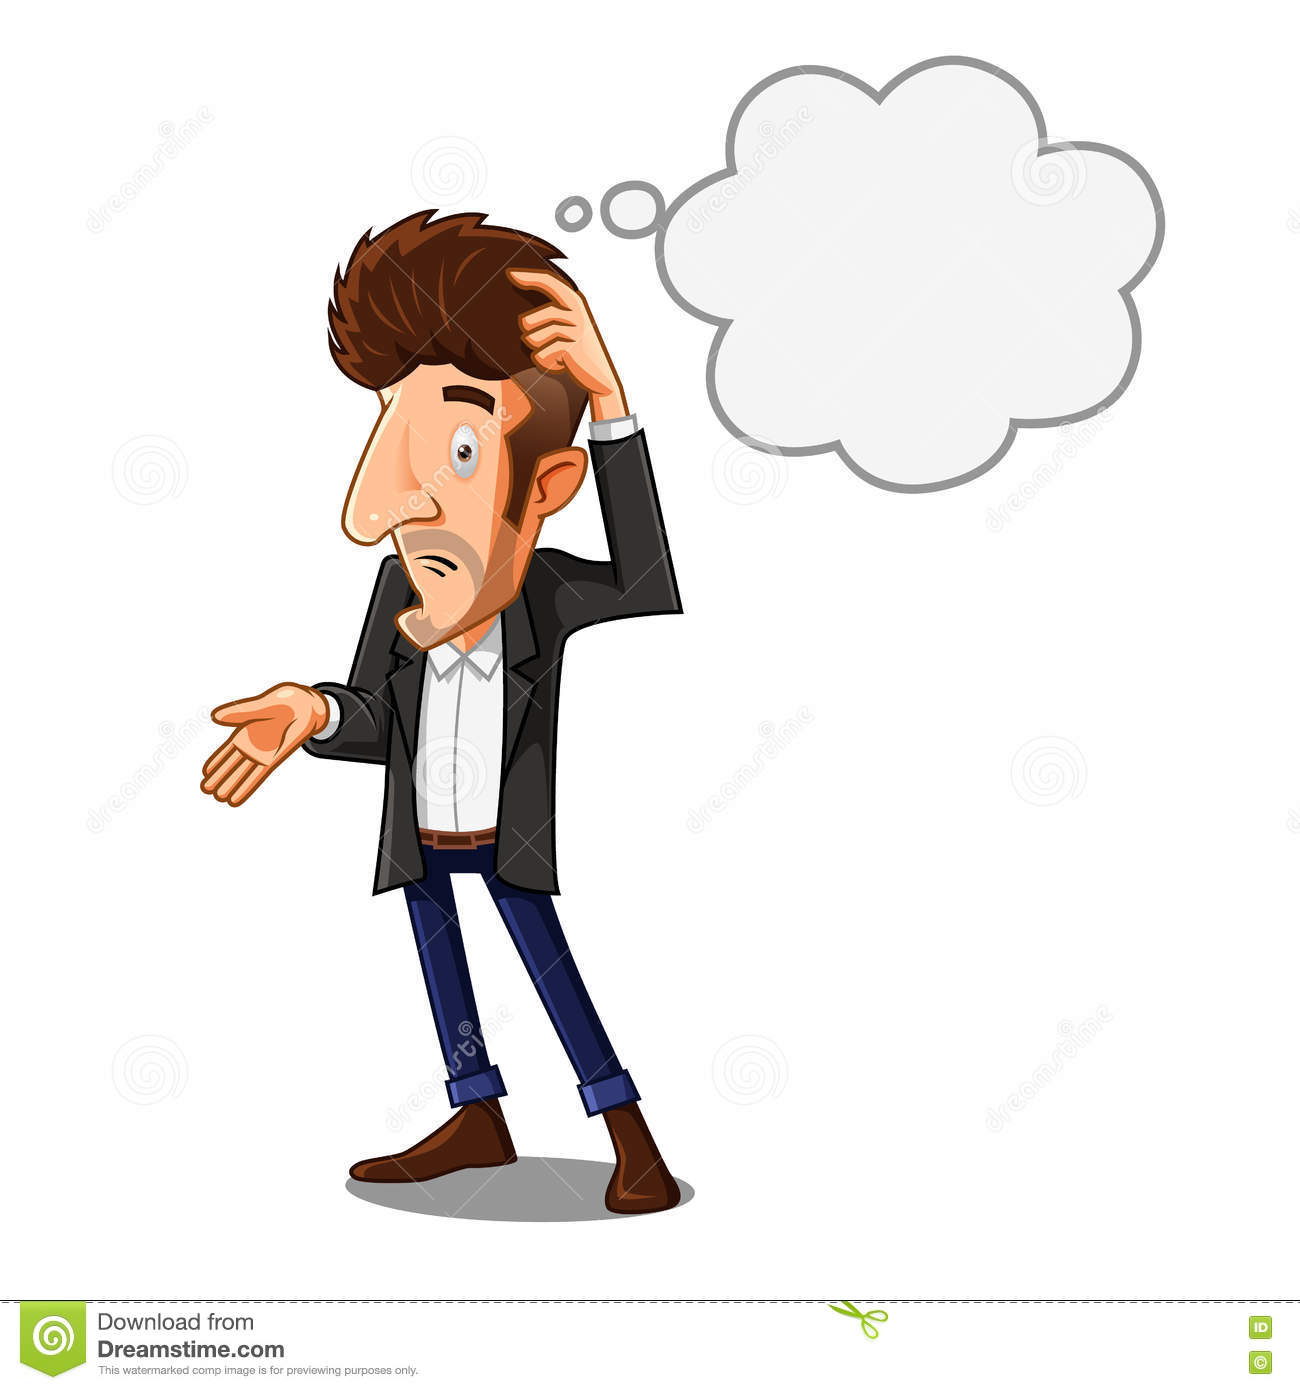 Confused Man stock vector. Illustration of person, scratching.